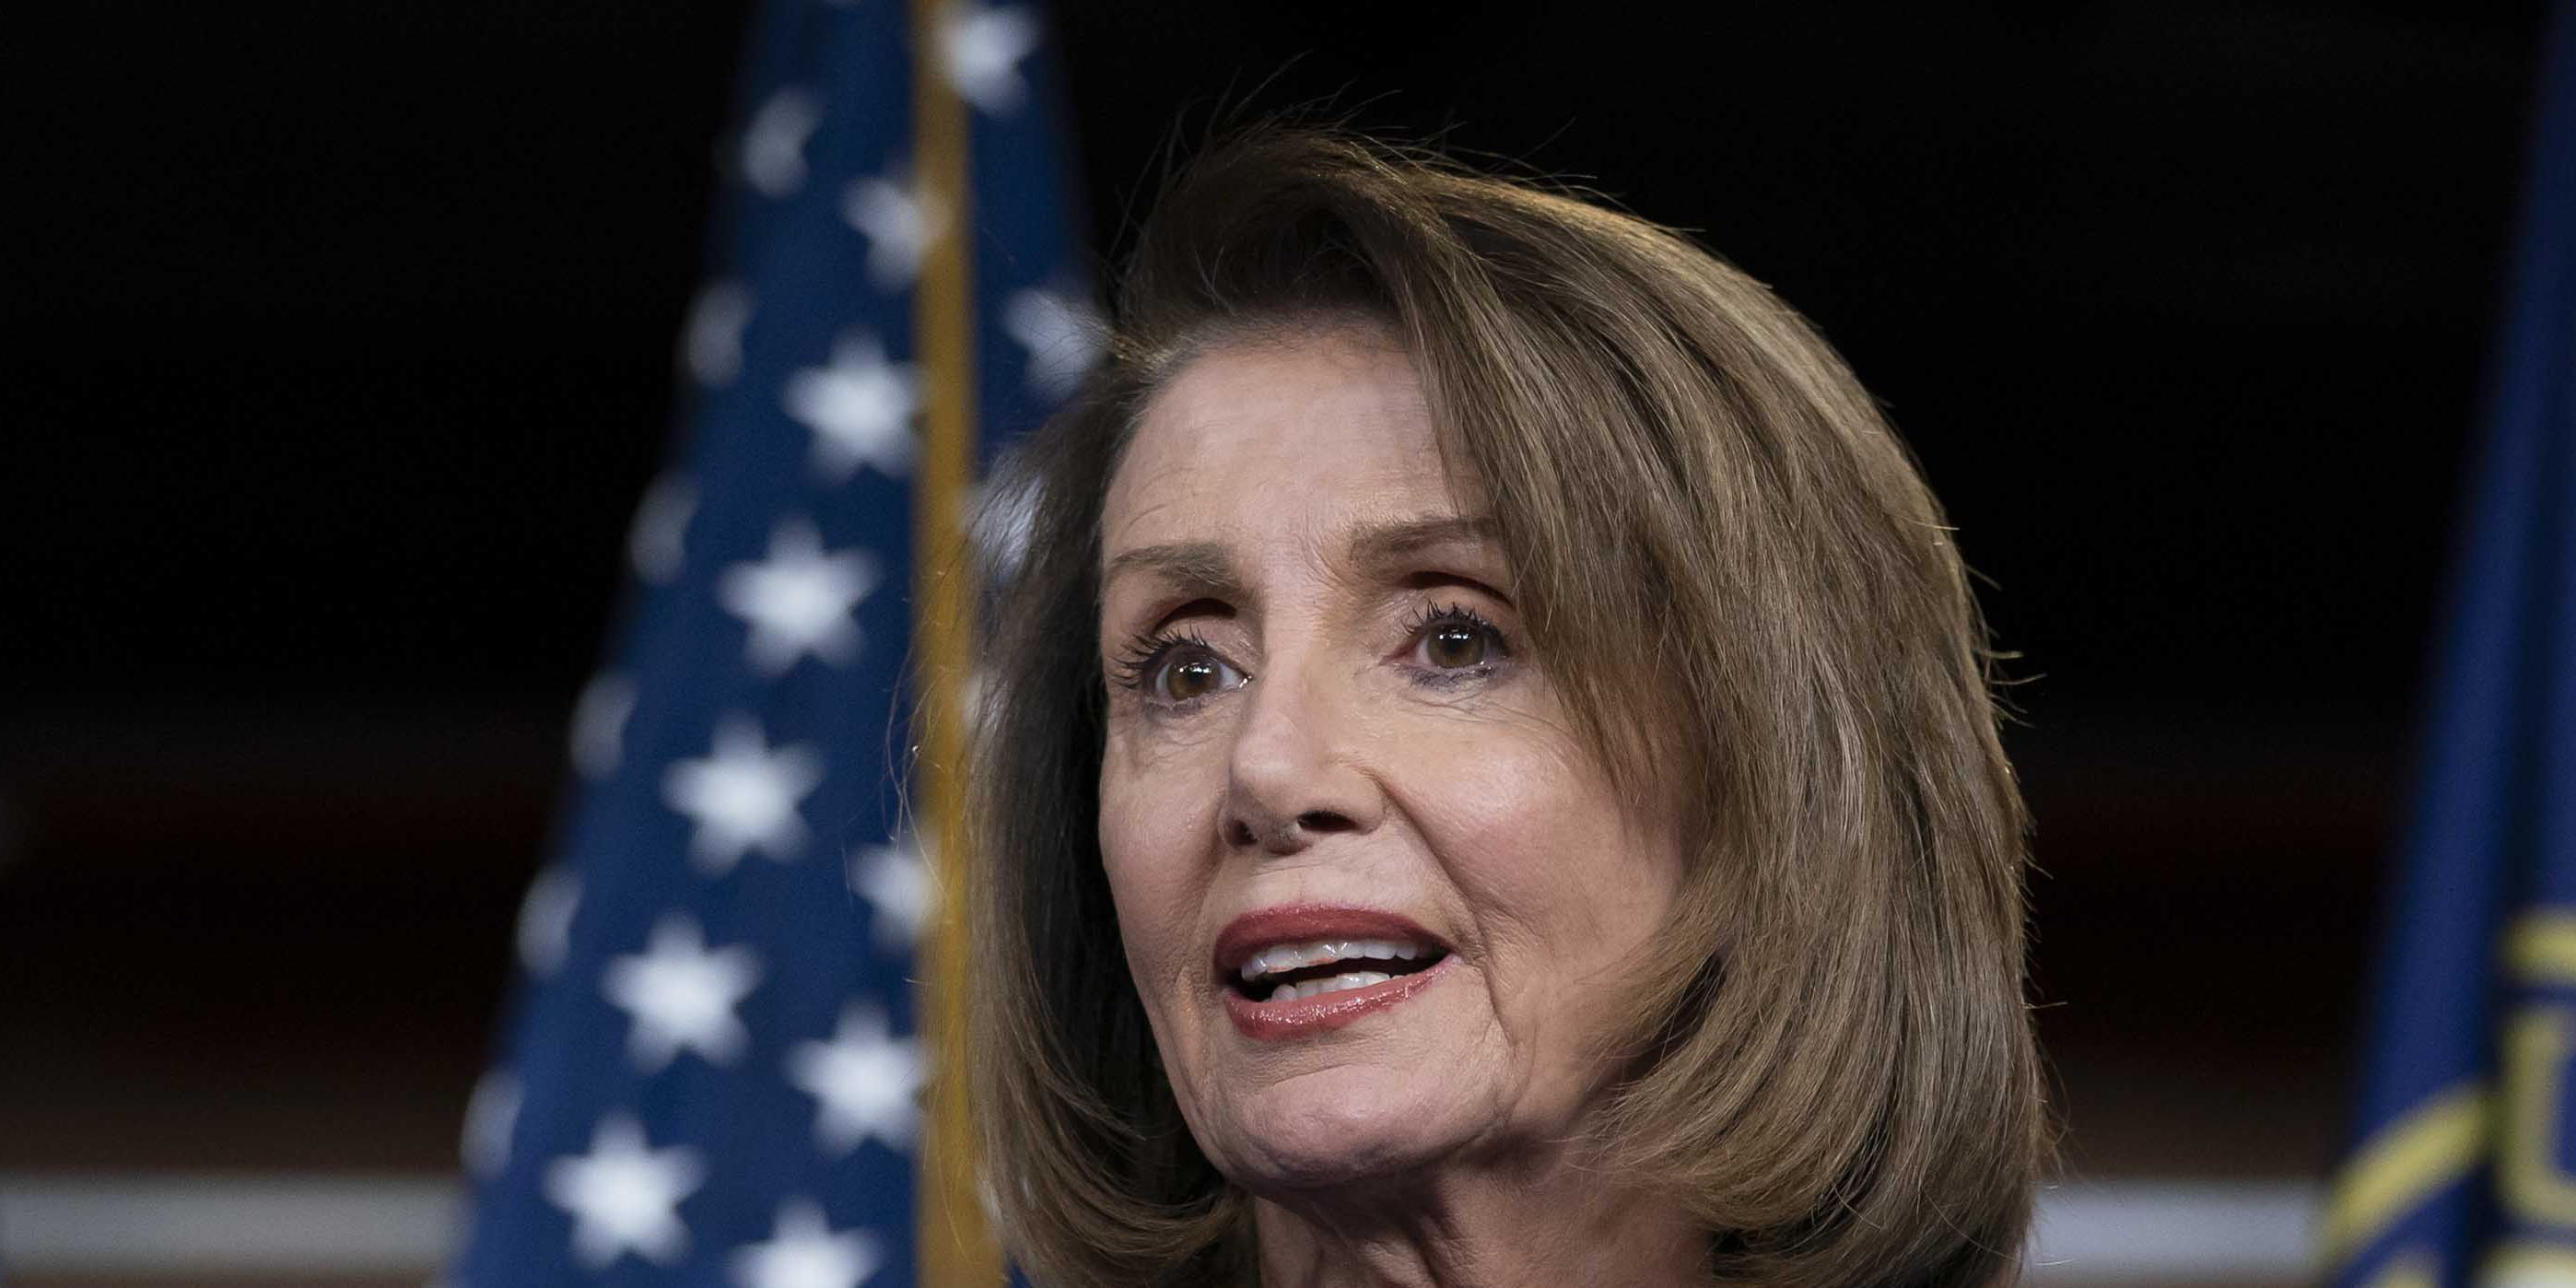 House Democrats' measure blocking Trump emergency declaration will come Friday